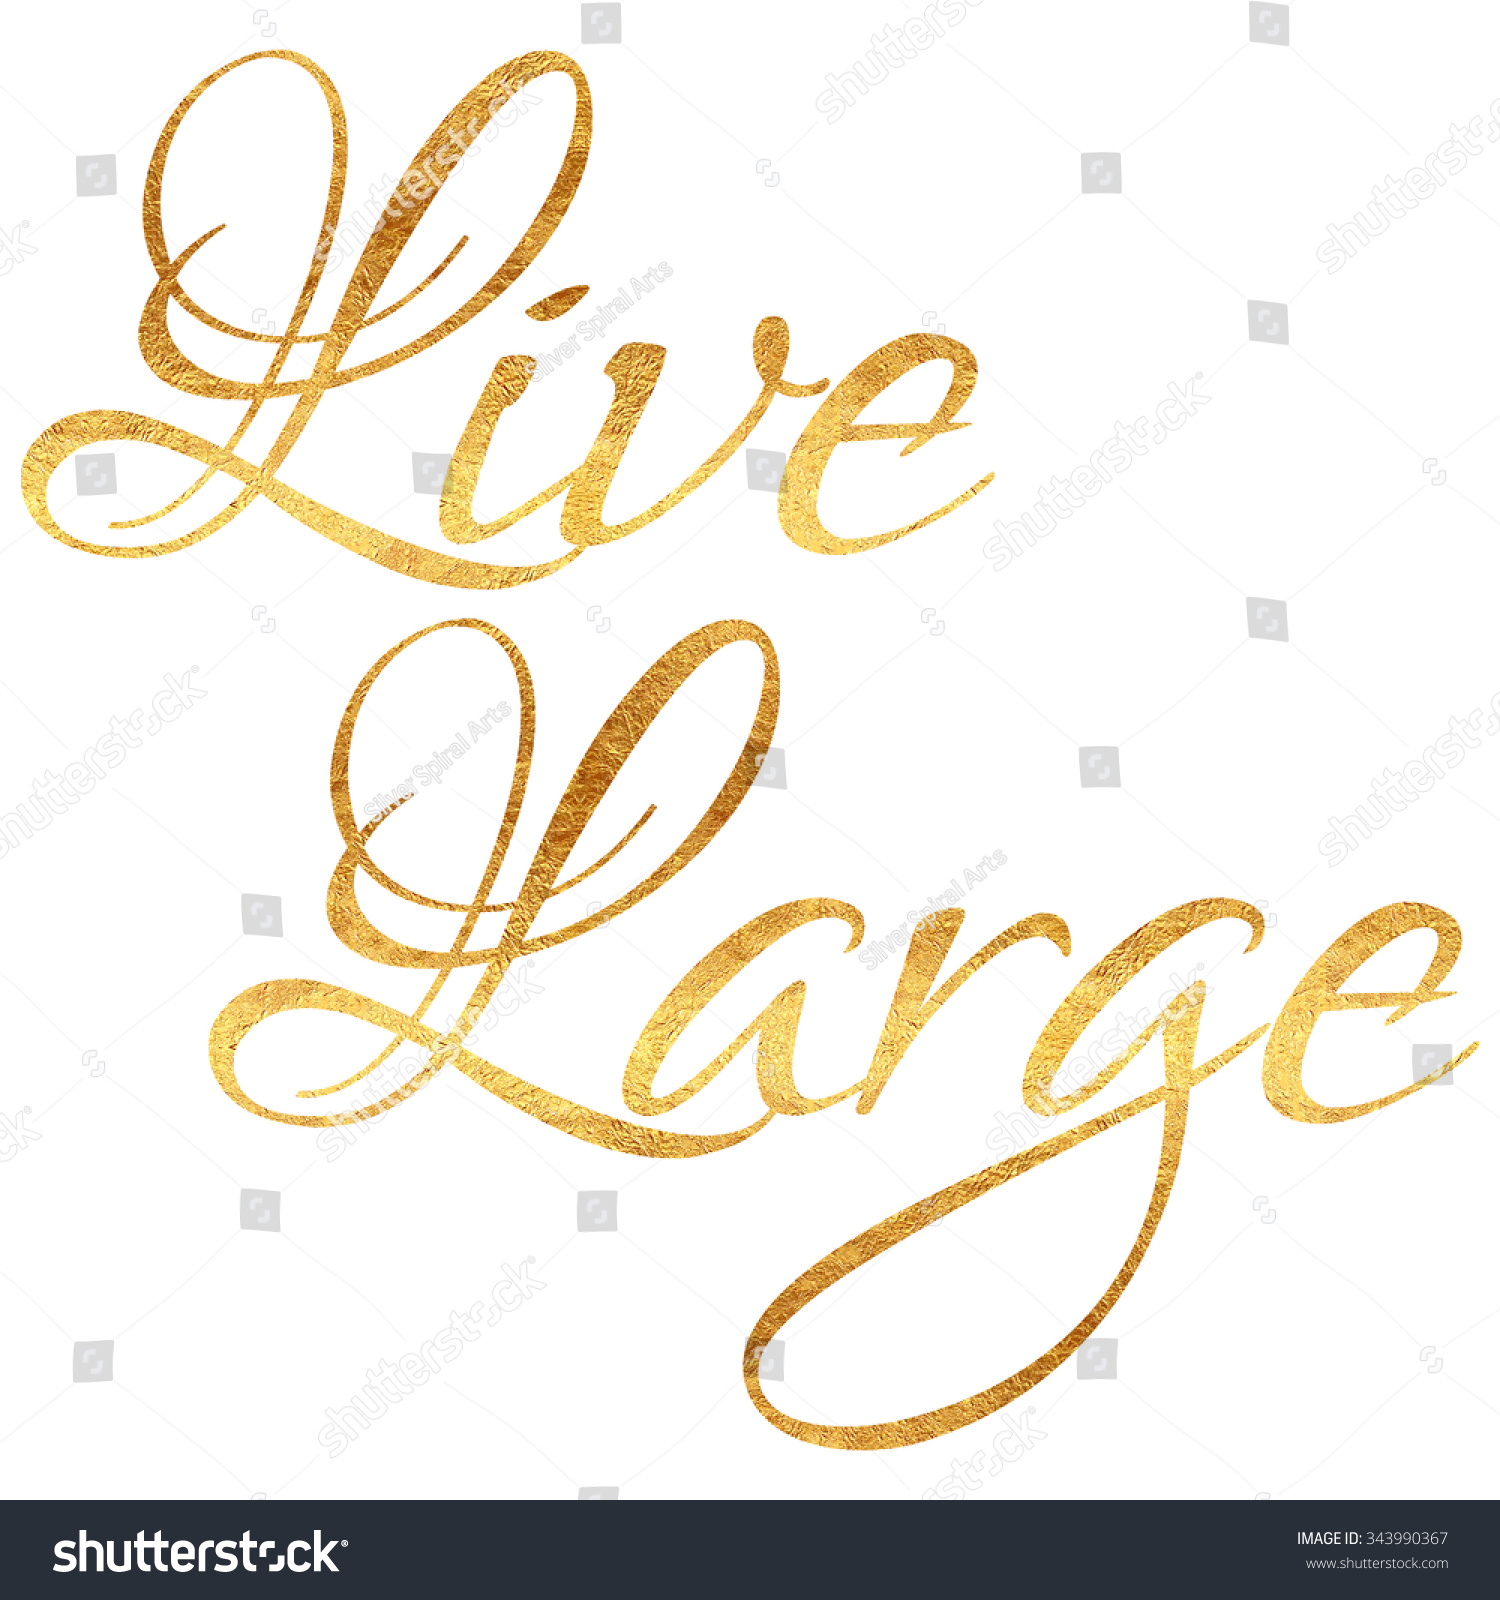 Live Gold Quotes Gorgeous Live Large Quote Gold Faux Foil Stock Illustration 343990367